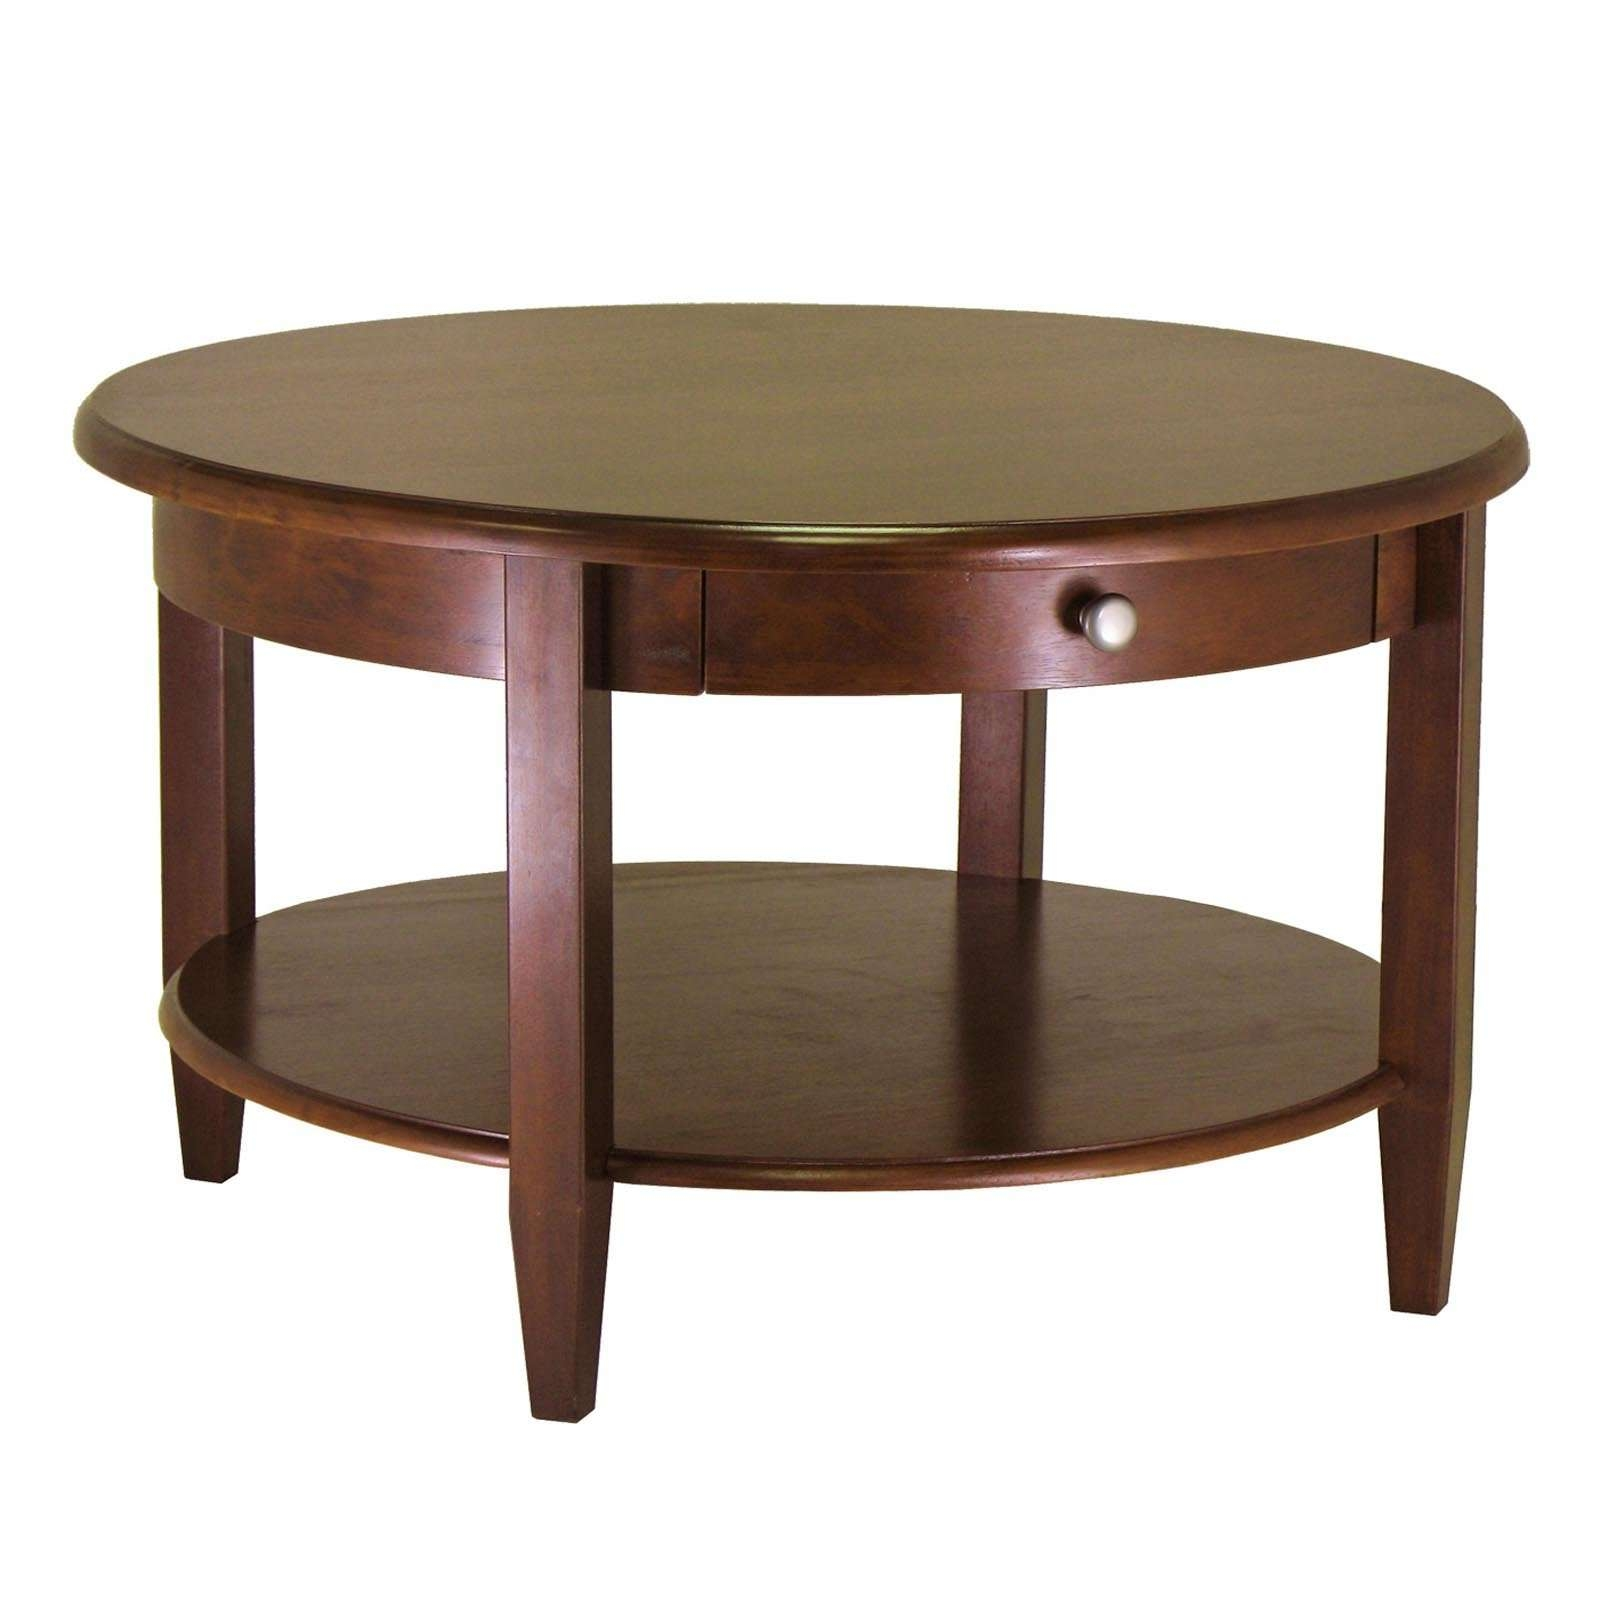 Favorite Small Round Coffee Tables In Coffee Tables : Small Round Coffee Table Tables Design Wood (View 7 of 20)